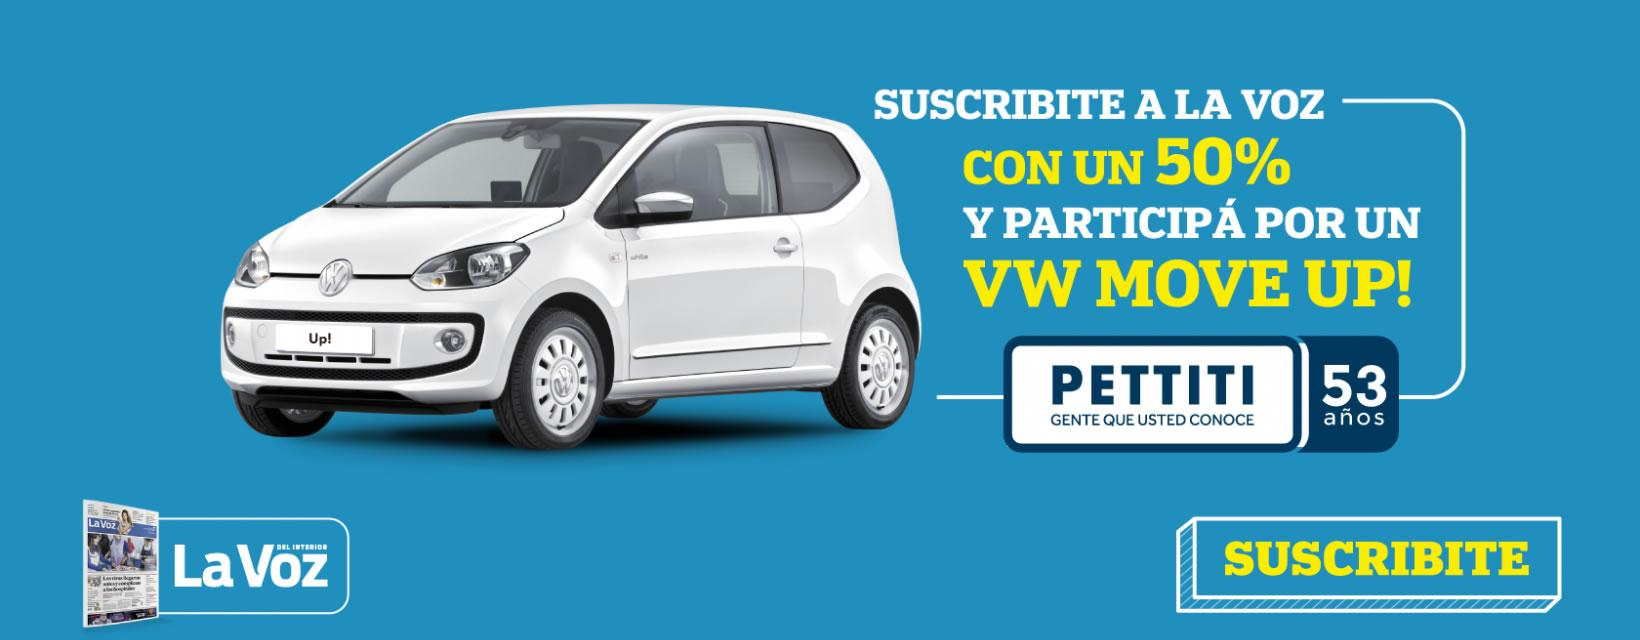 Captura + VW Move Up! BANNER